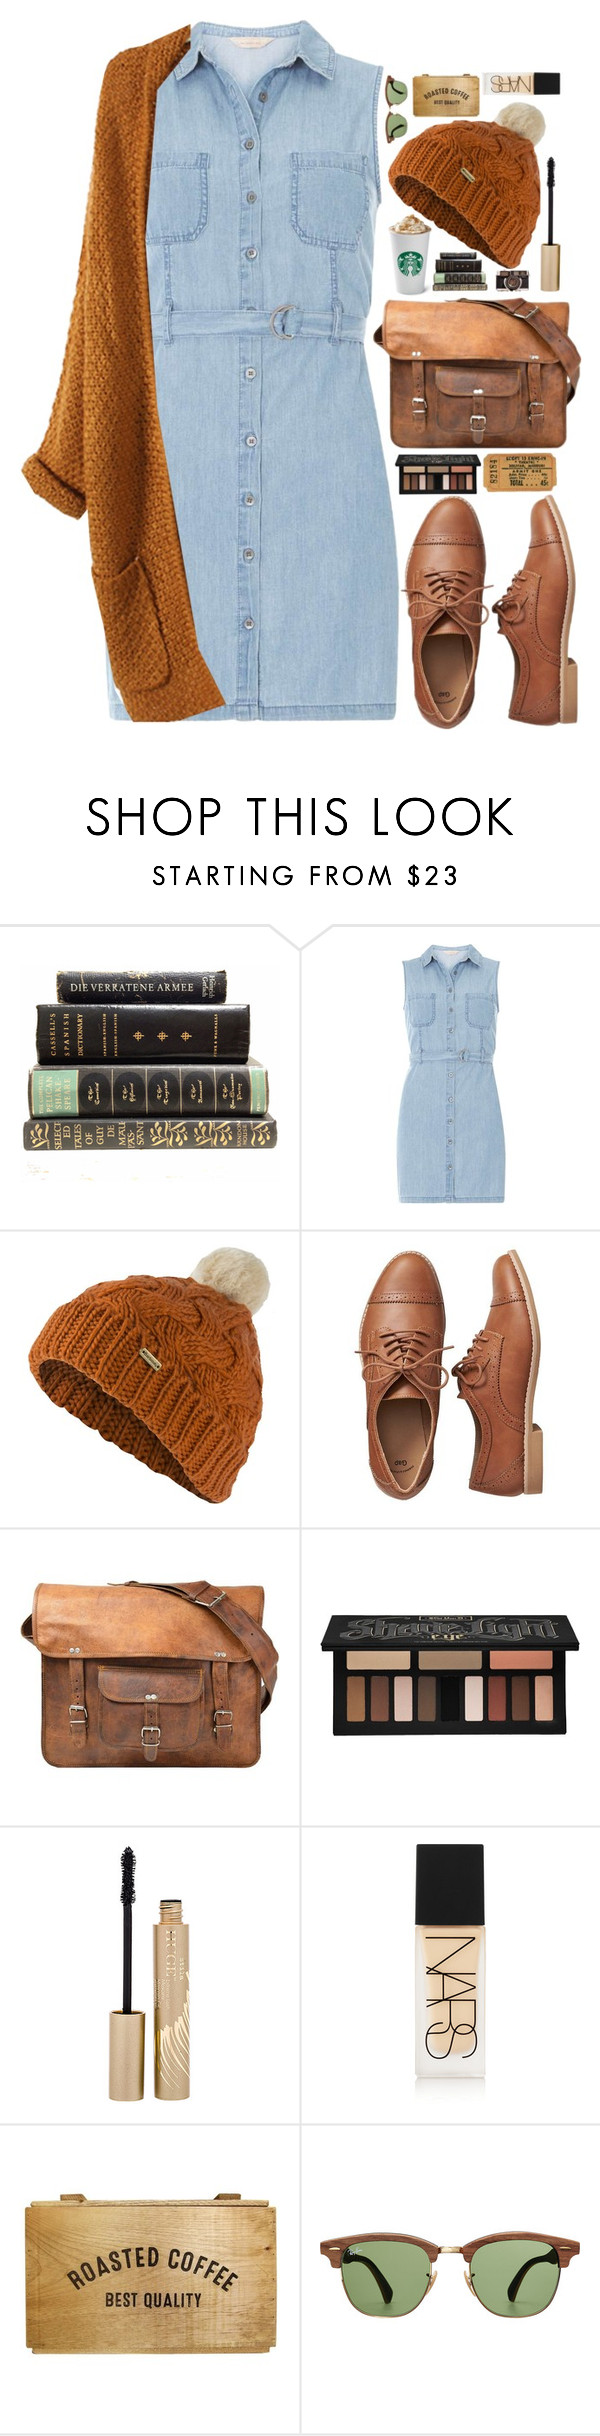 """""""Careful"""" by ellac9914 ❤ liked on Polyvore featuring Dorothy Perkins, Barbour, Gap, CO, Kat Von D, Stila, NARS Cosmetics, Ray-Ban, Fall and orange"""